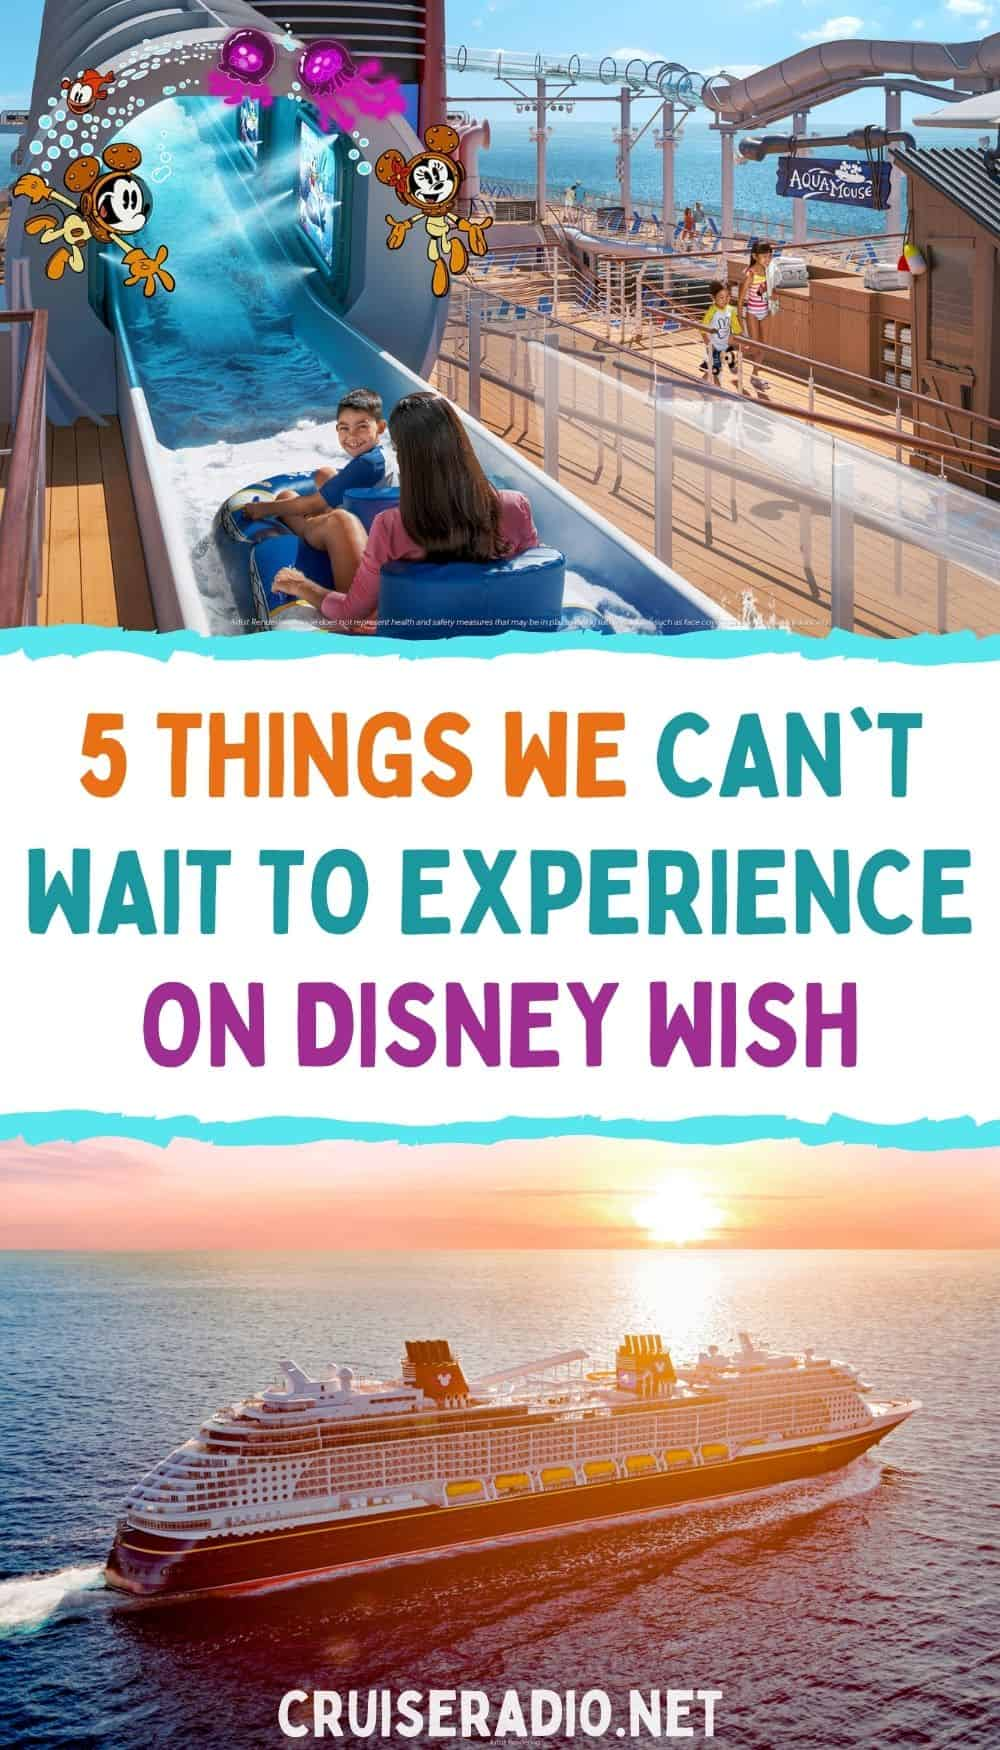 5 things we can't wait to experience on disney wish cruise ship